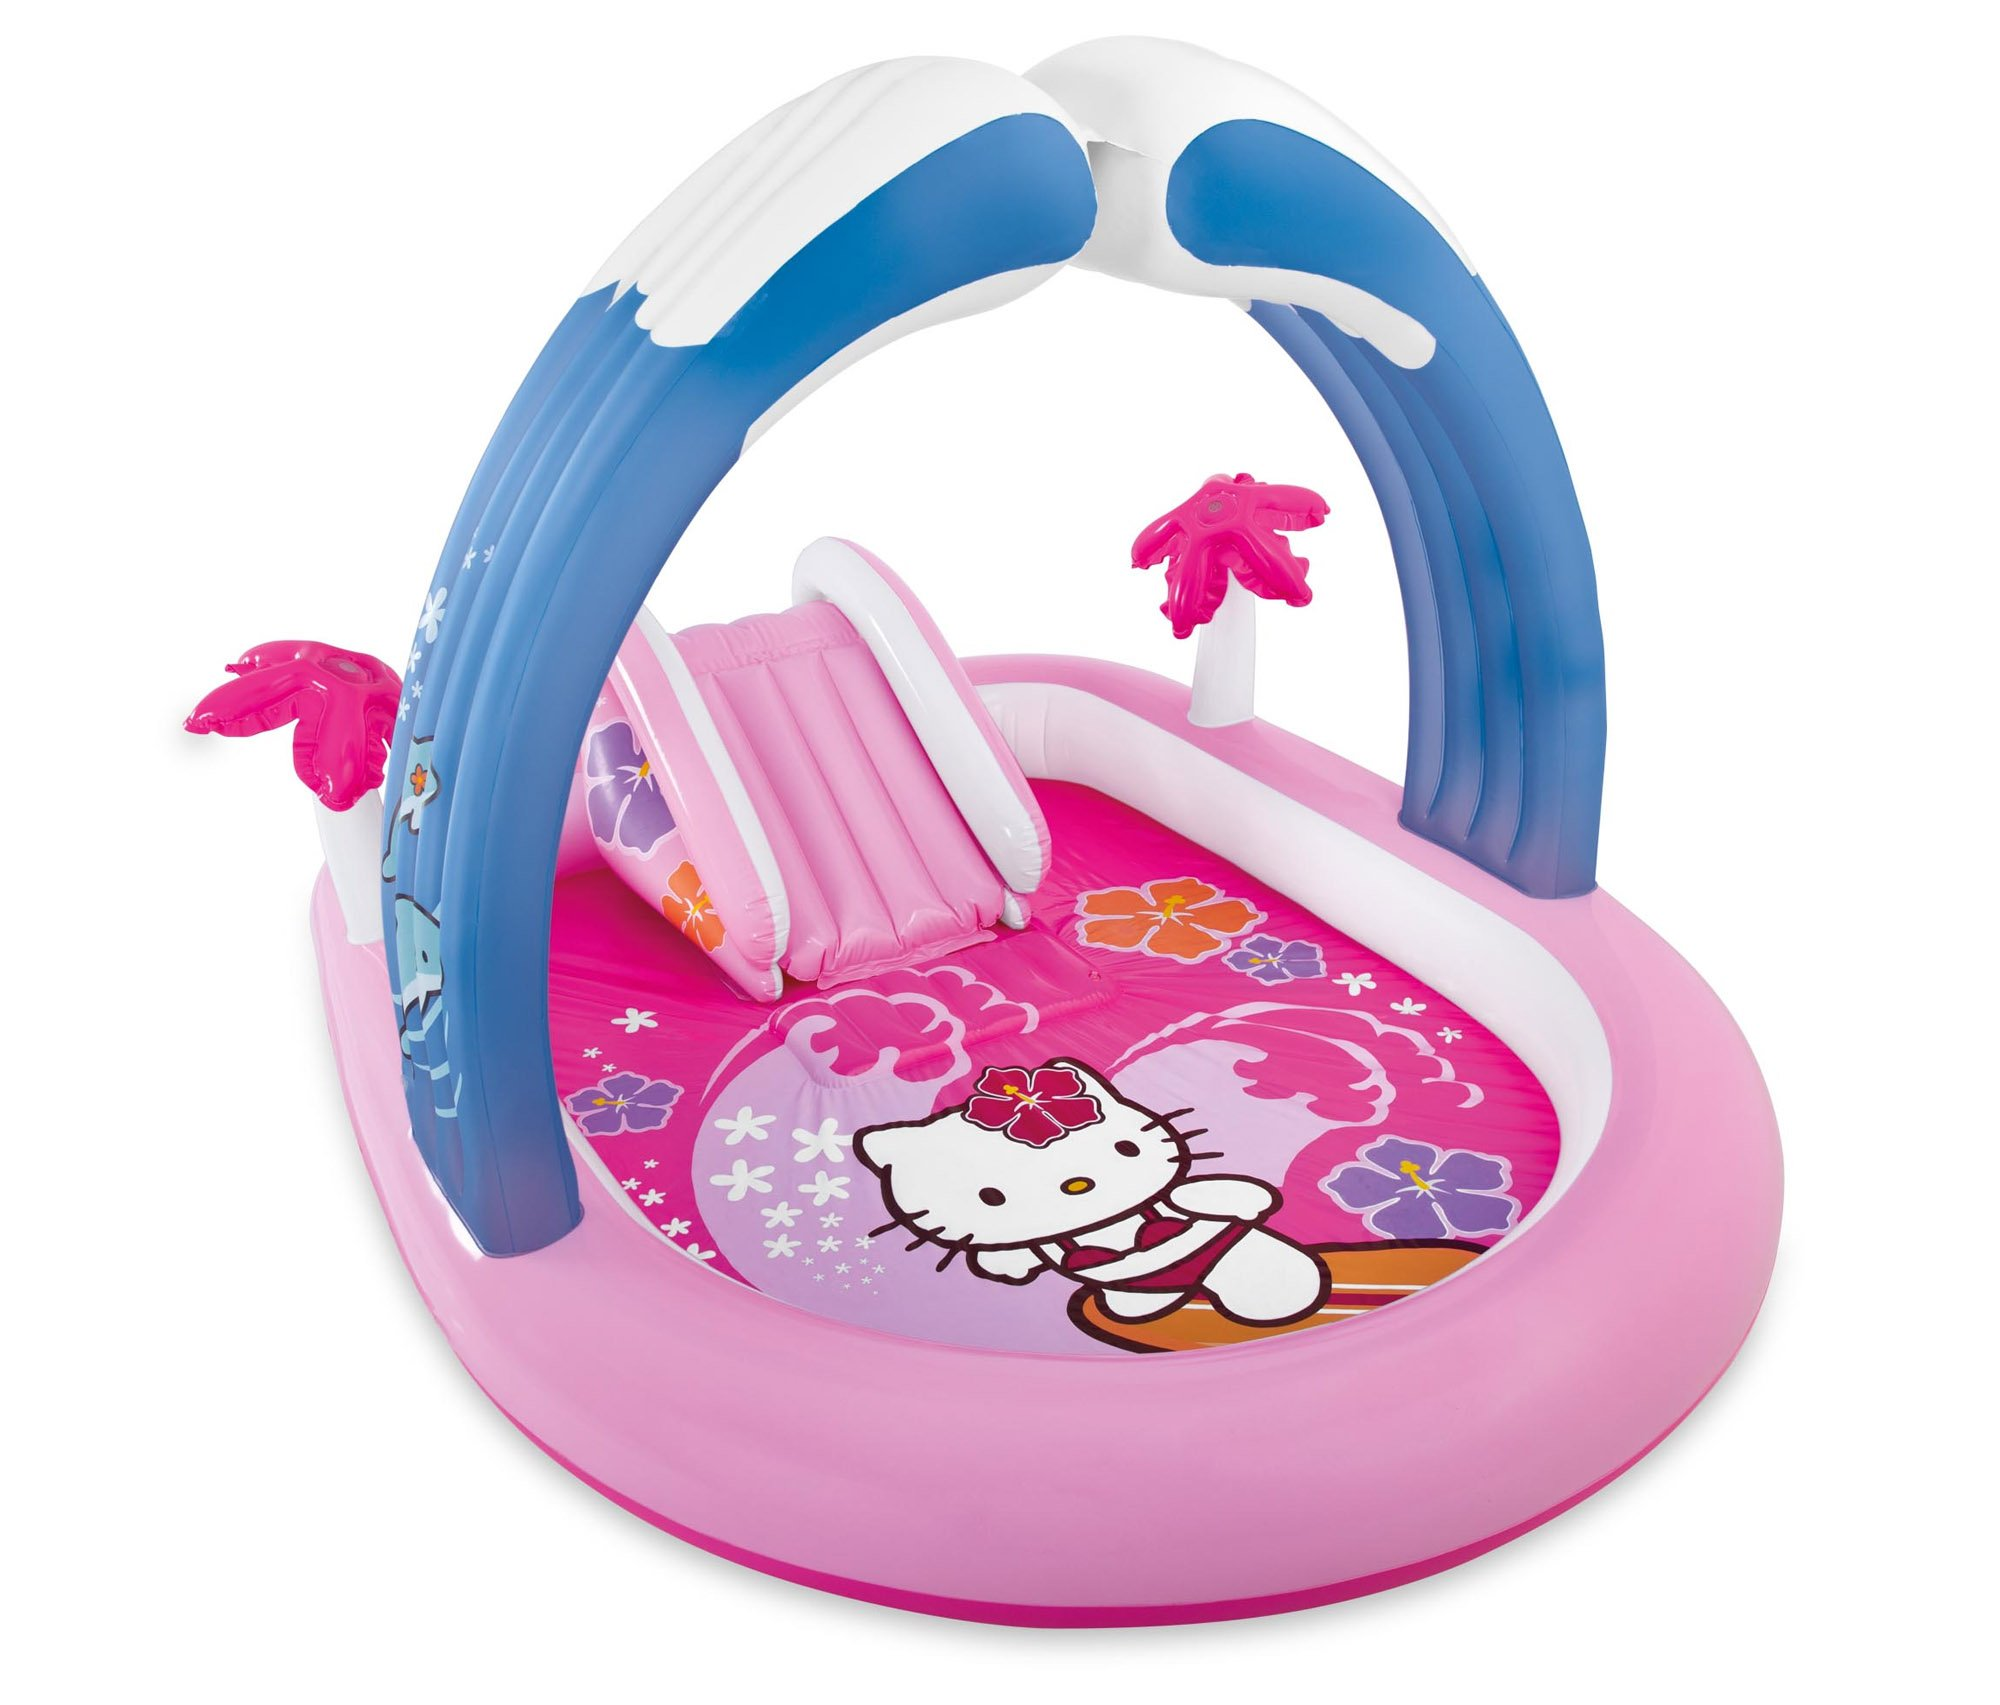 Intex Hello Kitty Inflatable Play Center, 83'' X 64'' X 51 1/2'', for Ages 2+